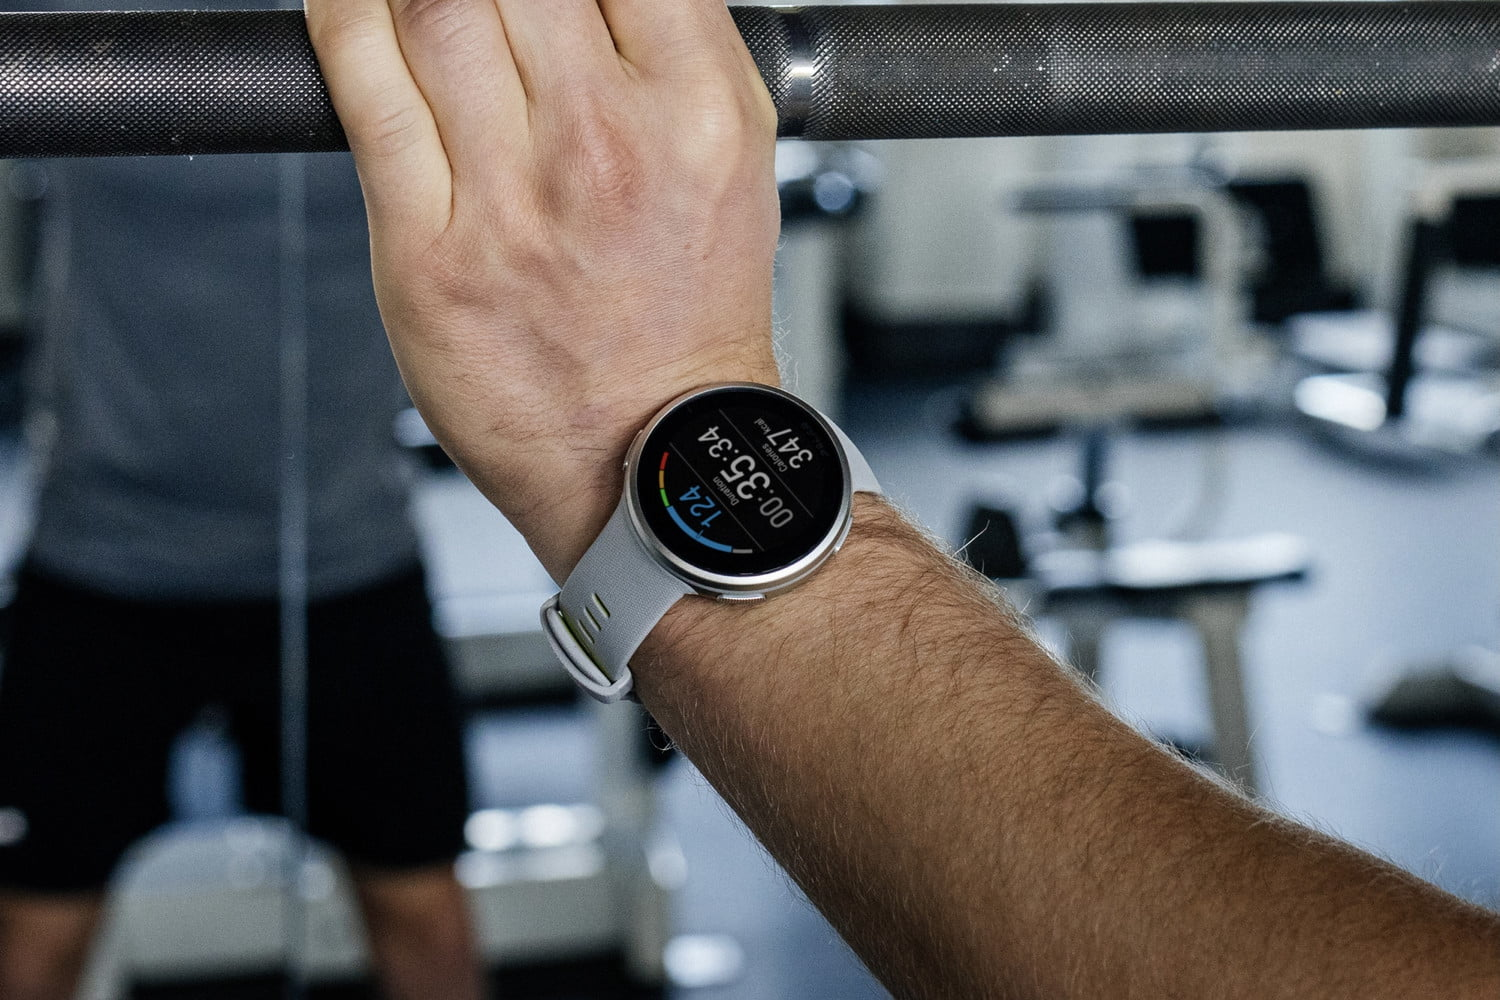 Polar's new Vantage V2 is as hardcore as fitness smartwatches get